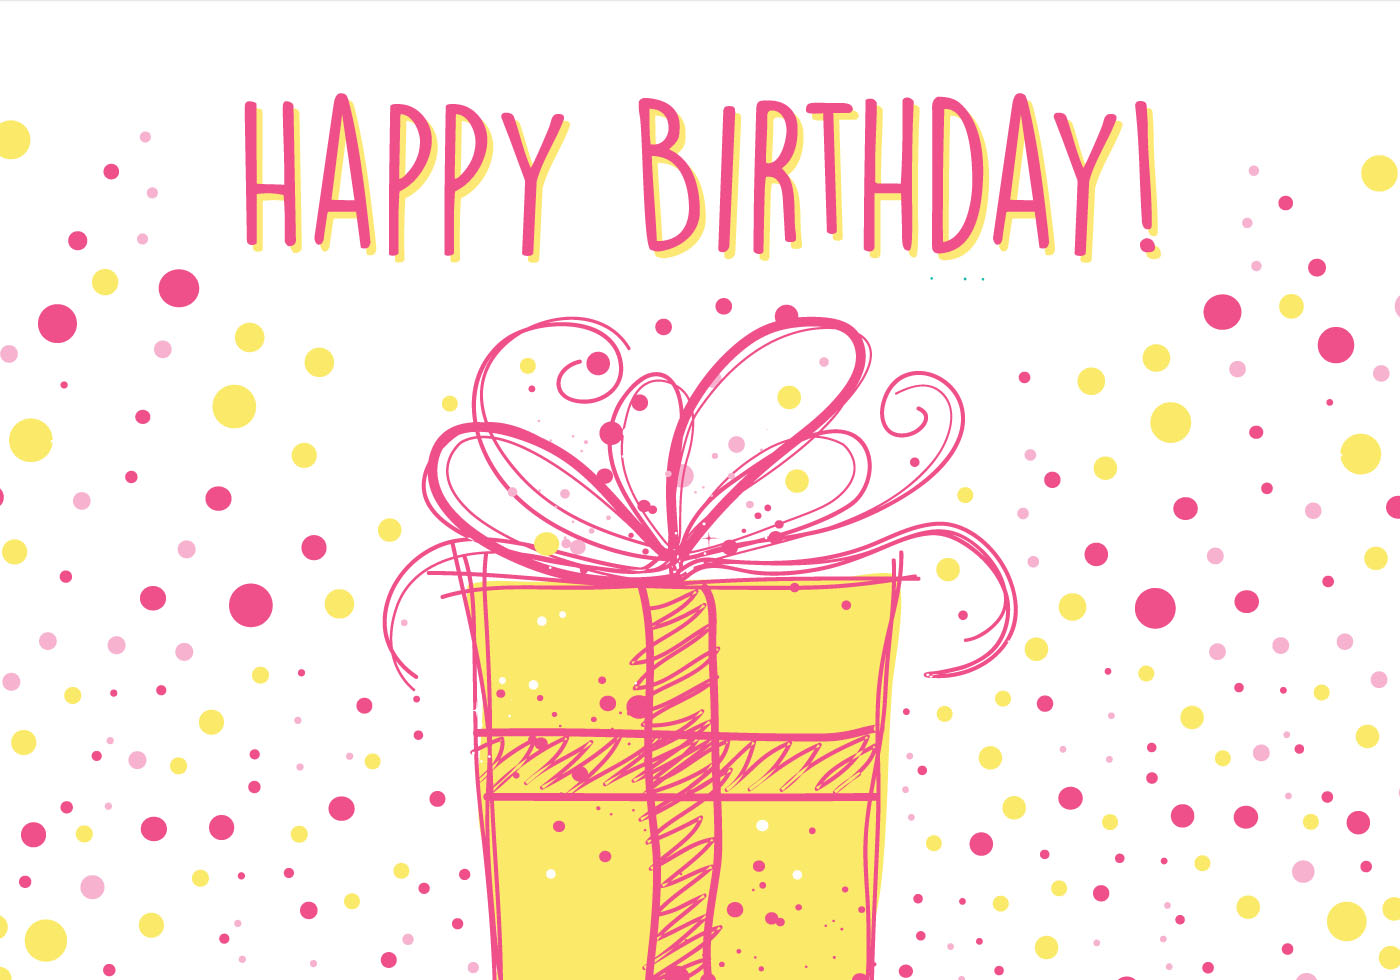 Birthday Cards Vector ~ Birthday card design download free vector art stock graphics images